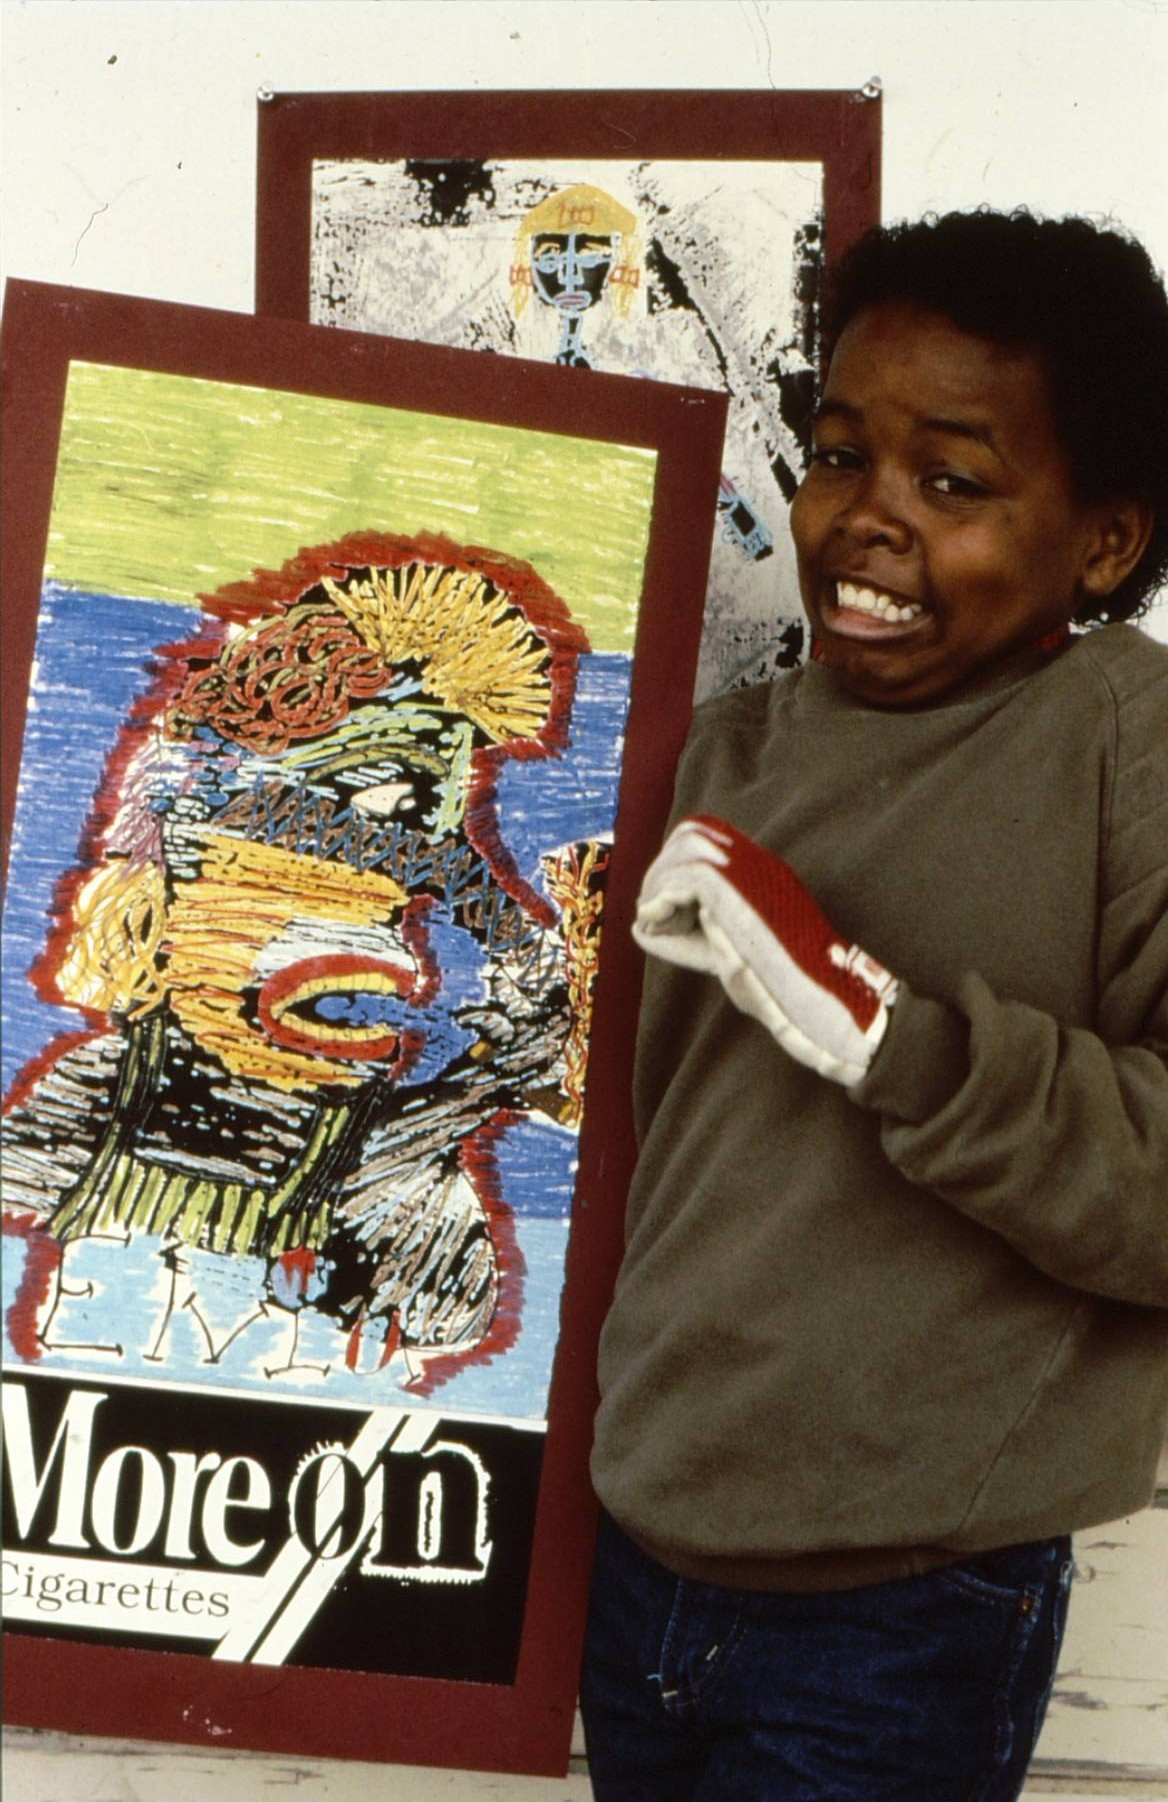 1989 Student with More On Poster